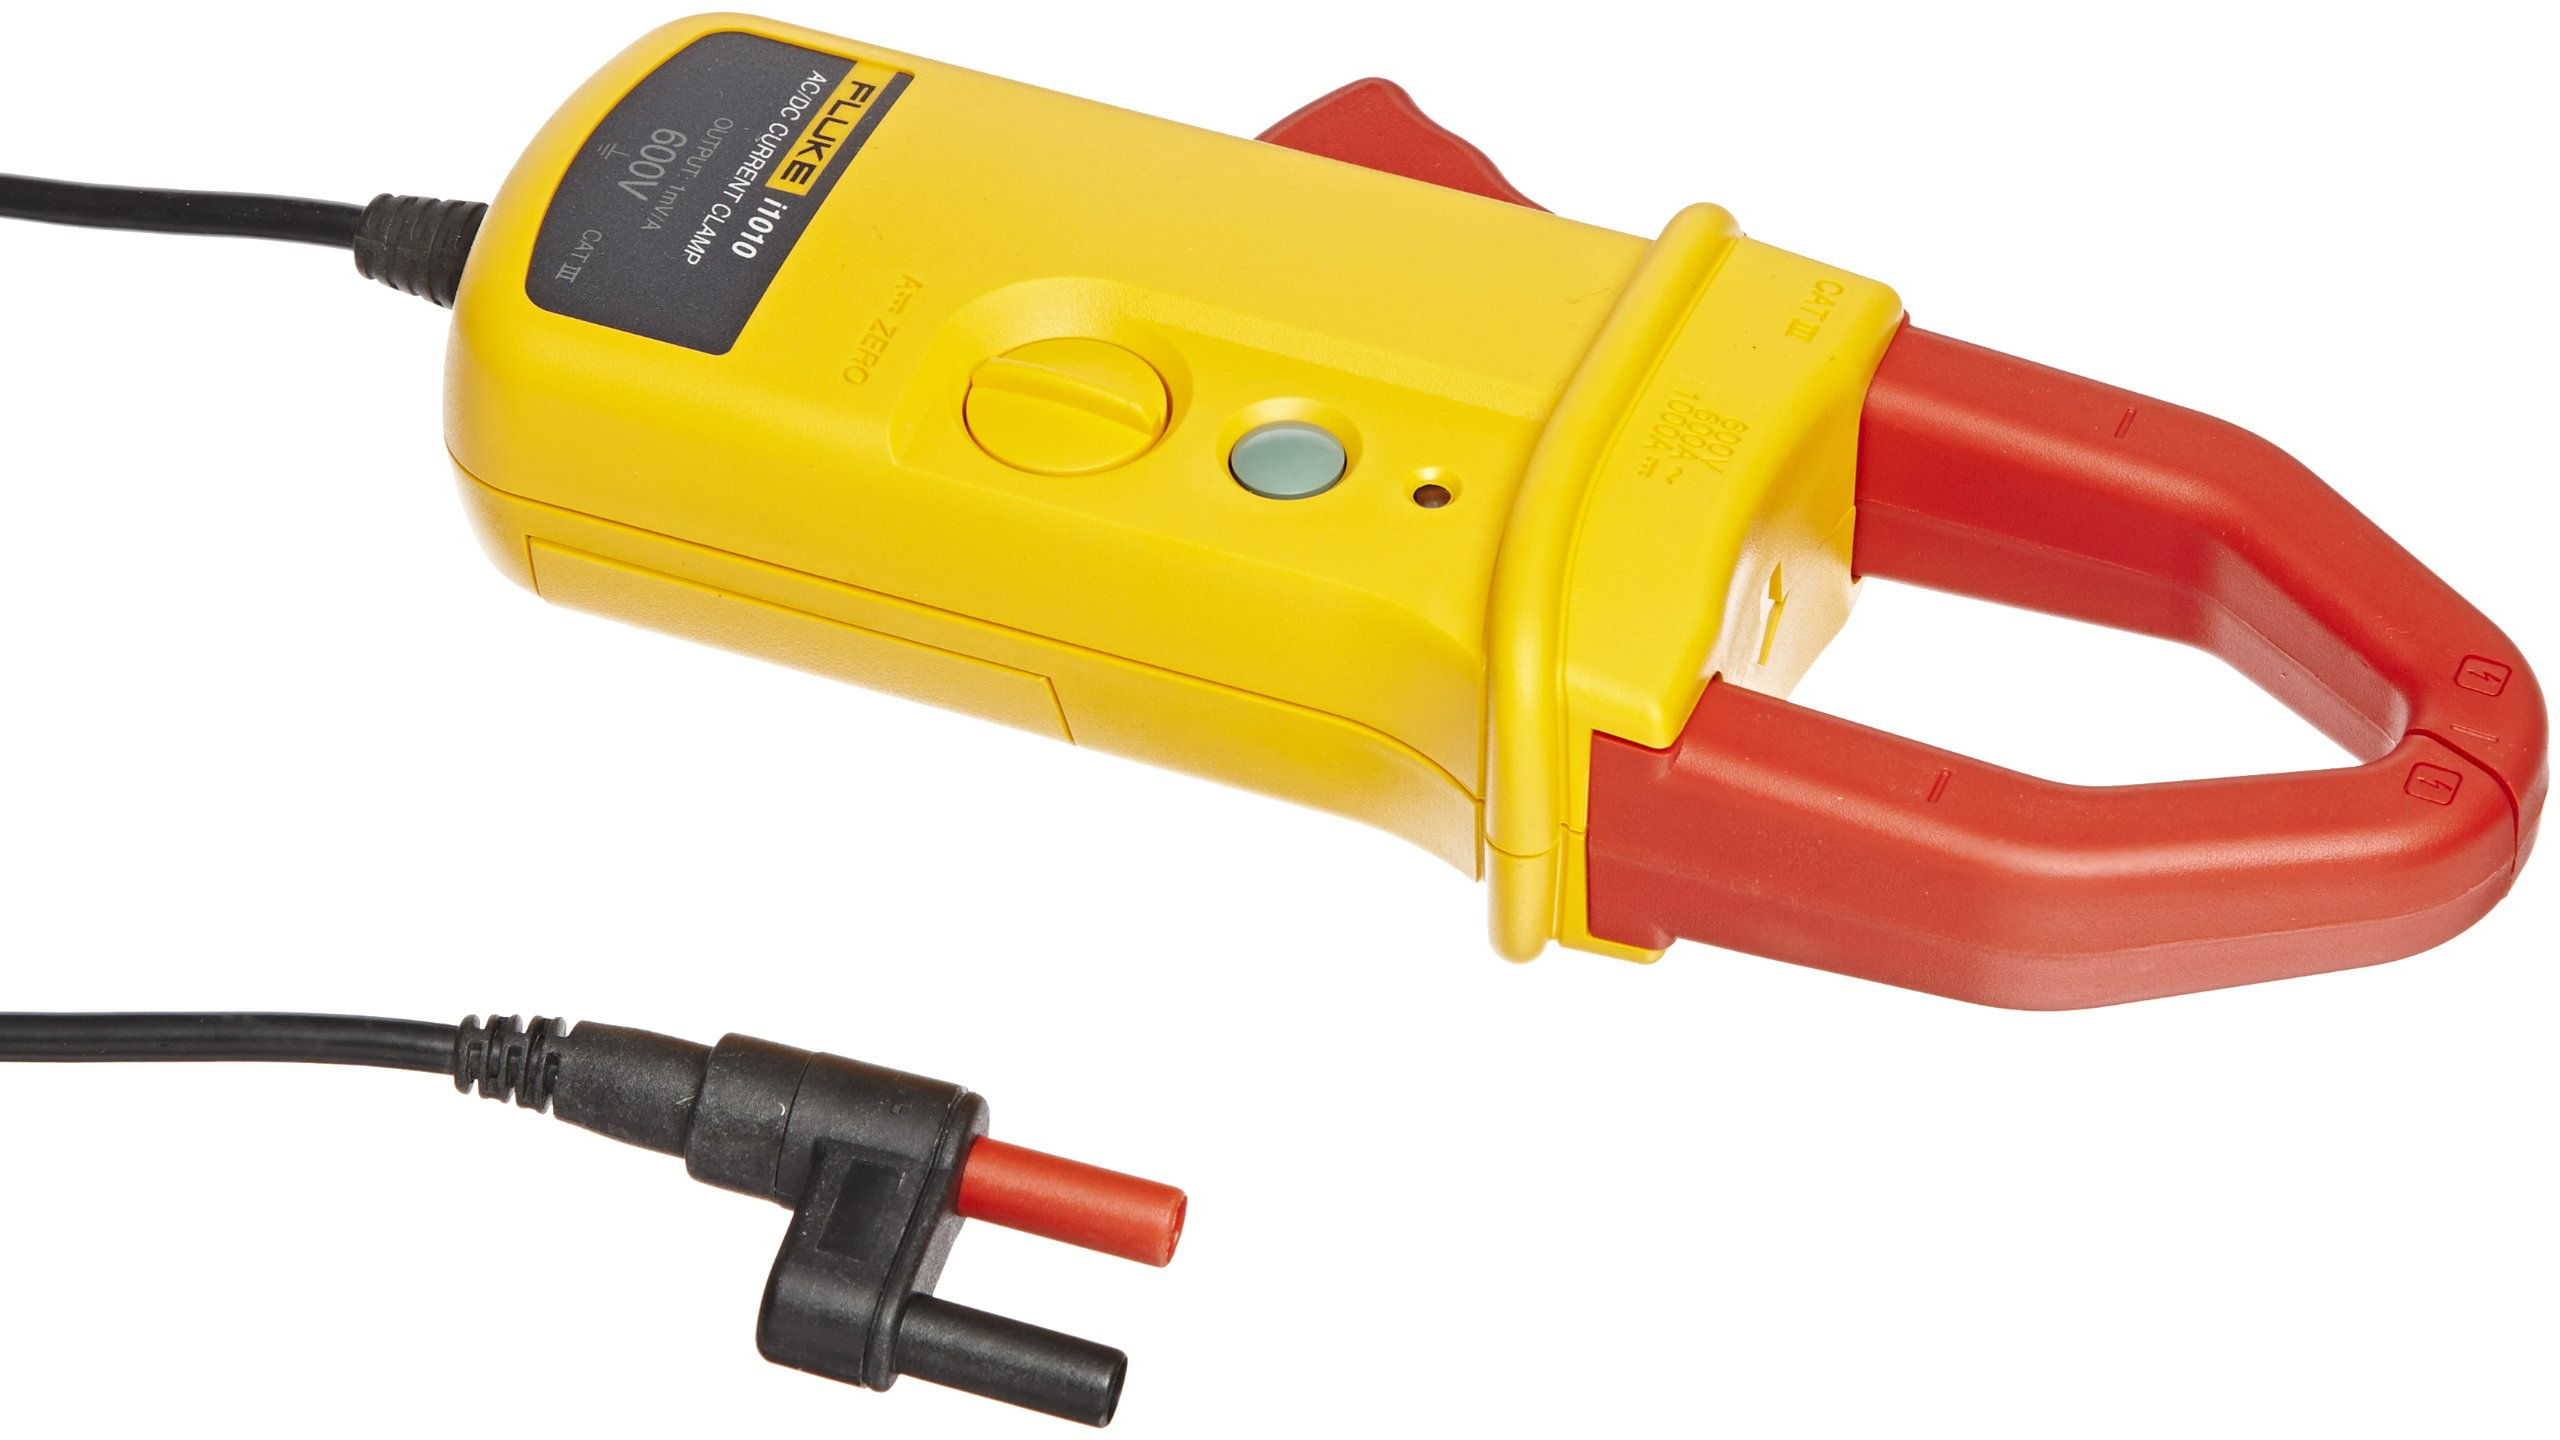 Fluke I1010 AC/DC Current Clamp for DMM's, 600V Voltage, 600A AC, 1000A DC Current